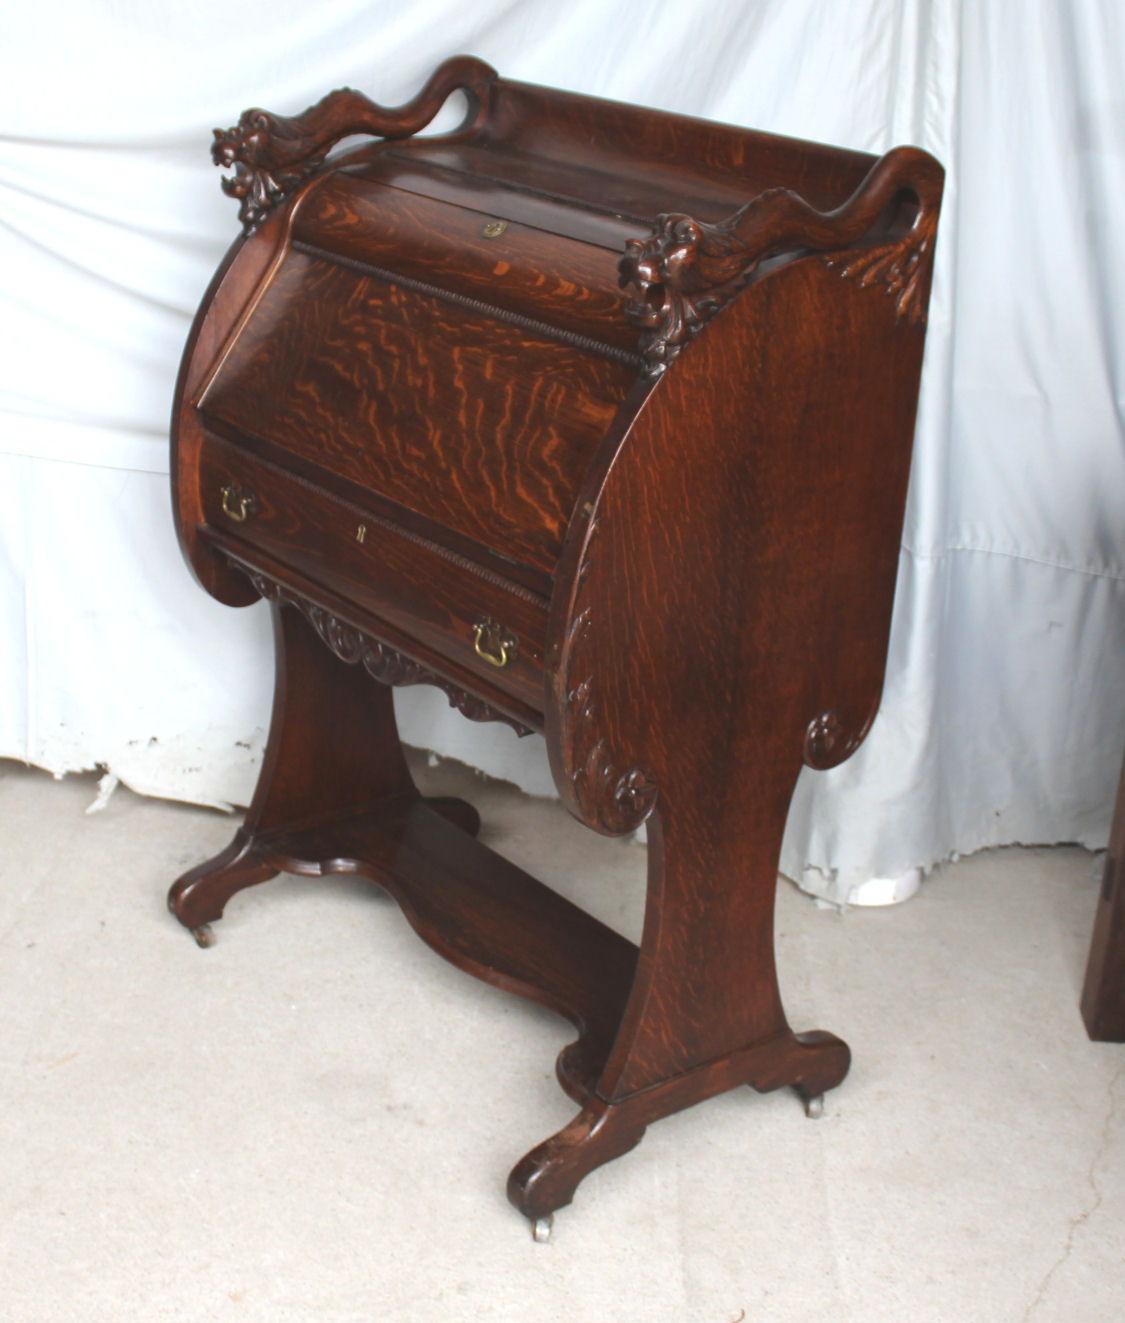 Unusual Desk Antique Oak Drop Front Secretary Desk Unusual Design Quarter Sawn Oak